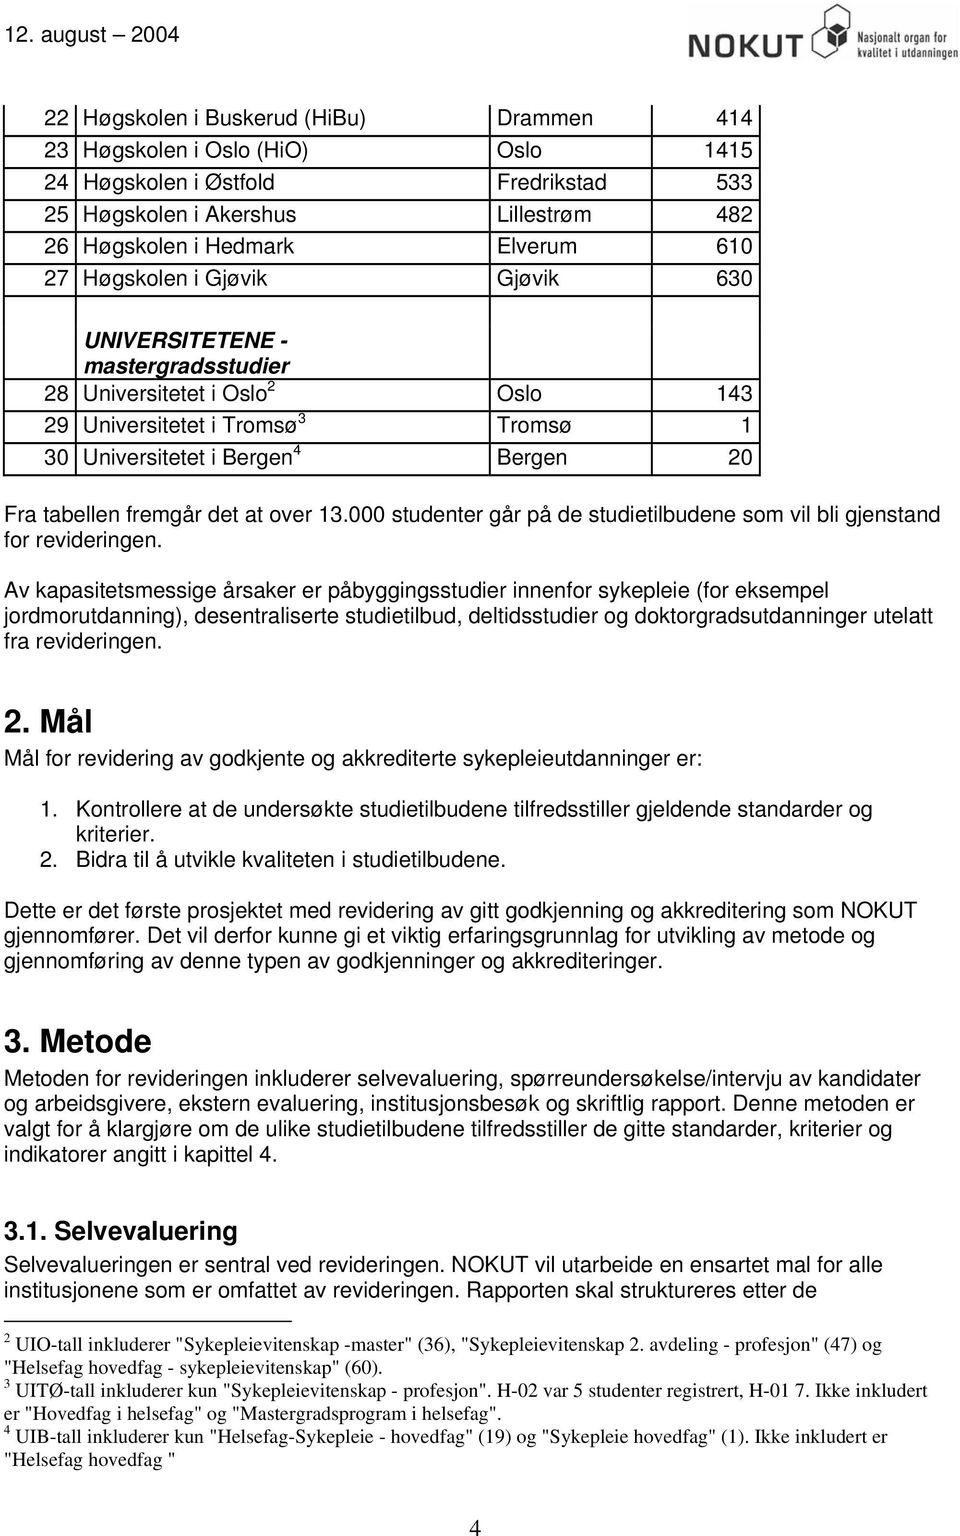 det at over 13.000 studenter går på de studietilbudene som vil bli gjenstand for revideringen.